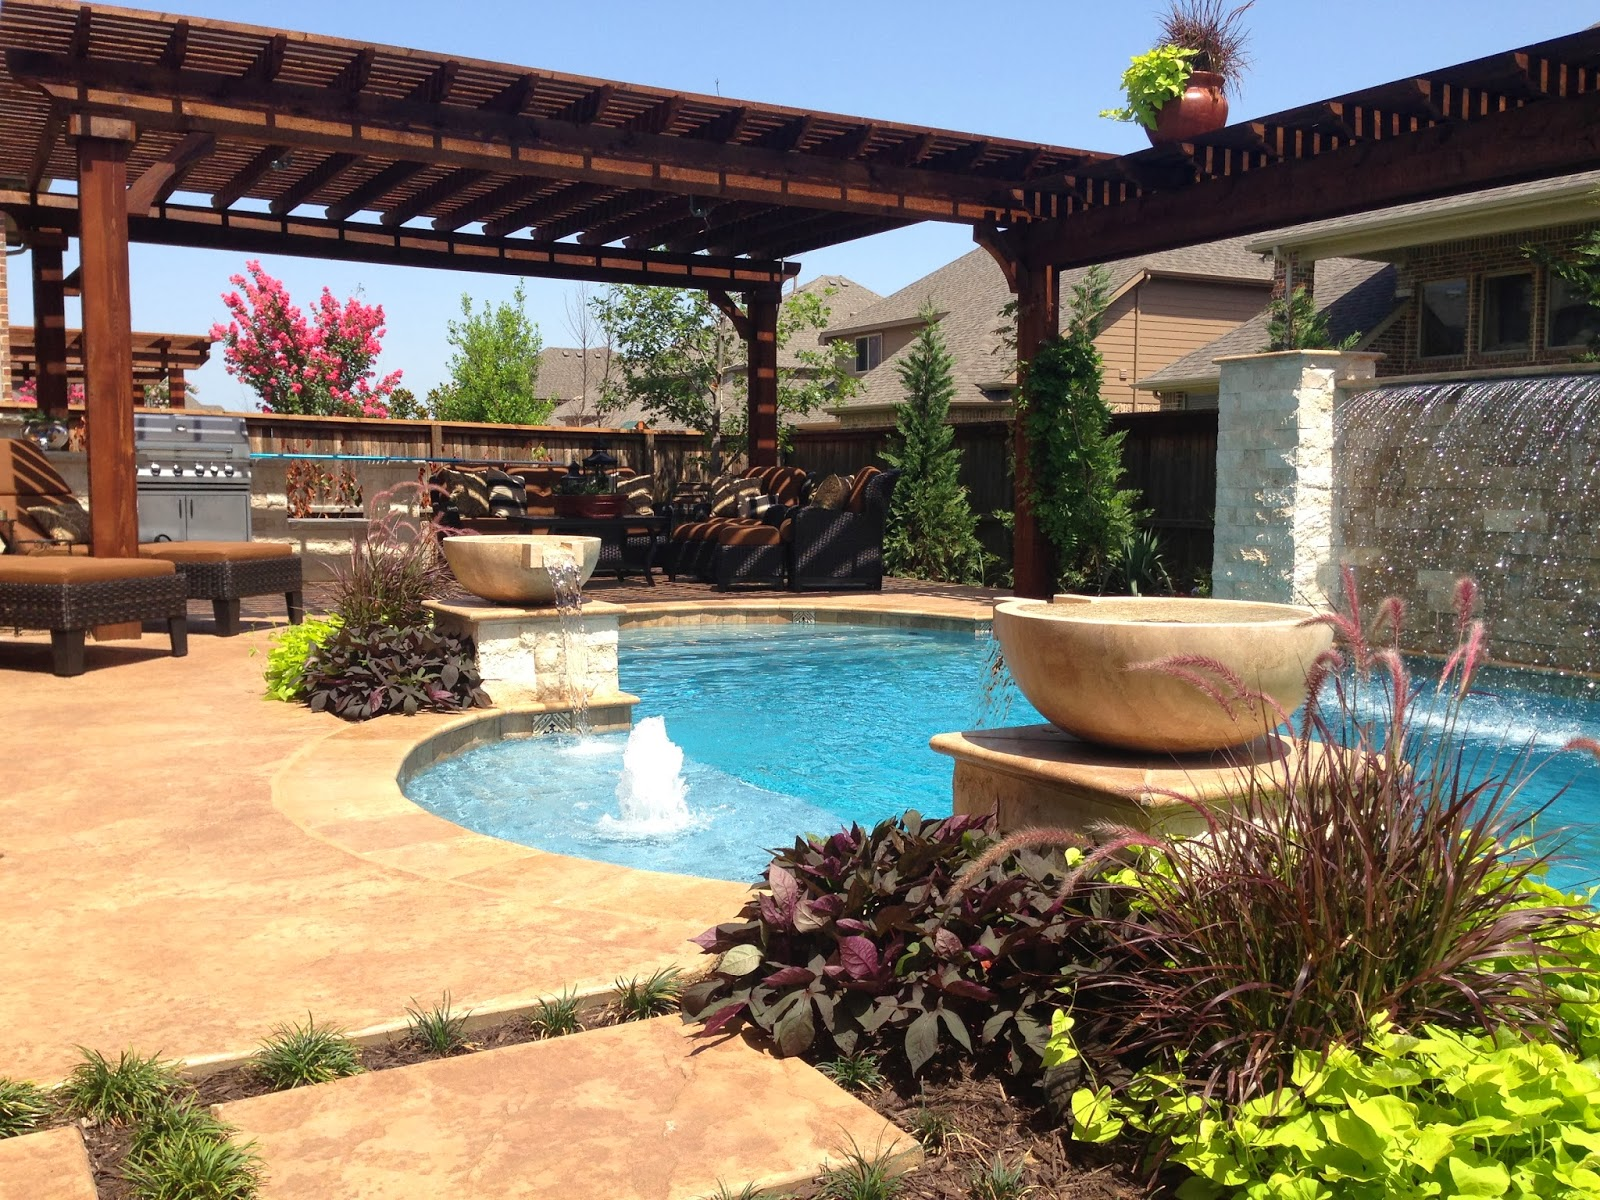 Swimming pools in dfw by dolce pools october 2013 for Custom indoor pools